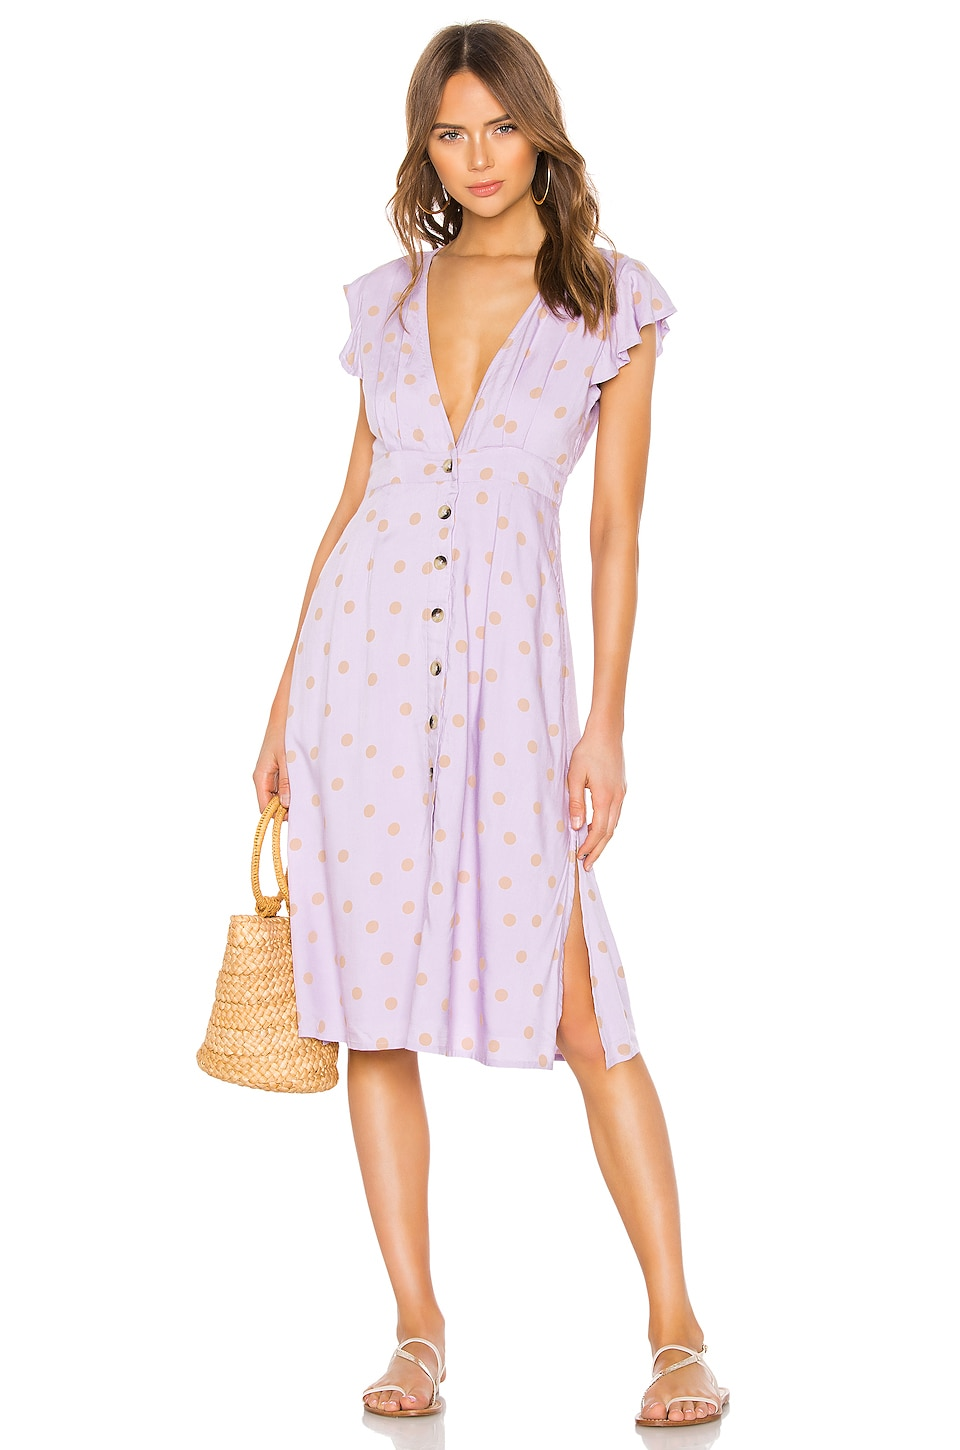 X REVOLVE Jordan Dress             L*SPACE                                                                                                                                         Sale price:                                                                       CA$ 88.47                                                                  Previous price:                                                                       CA$ 195.19 14